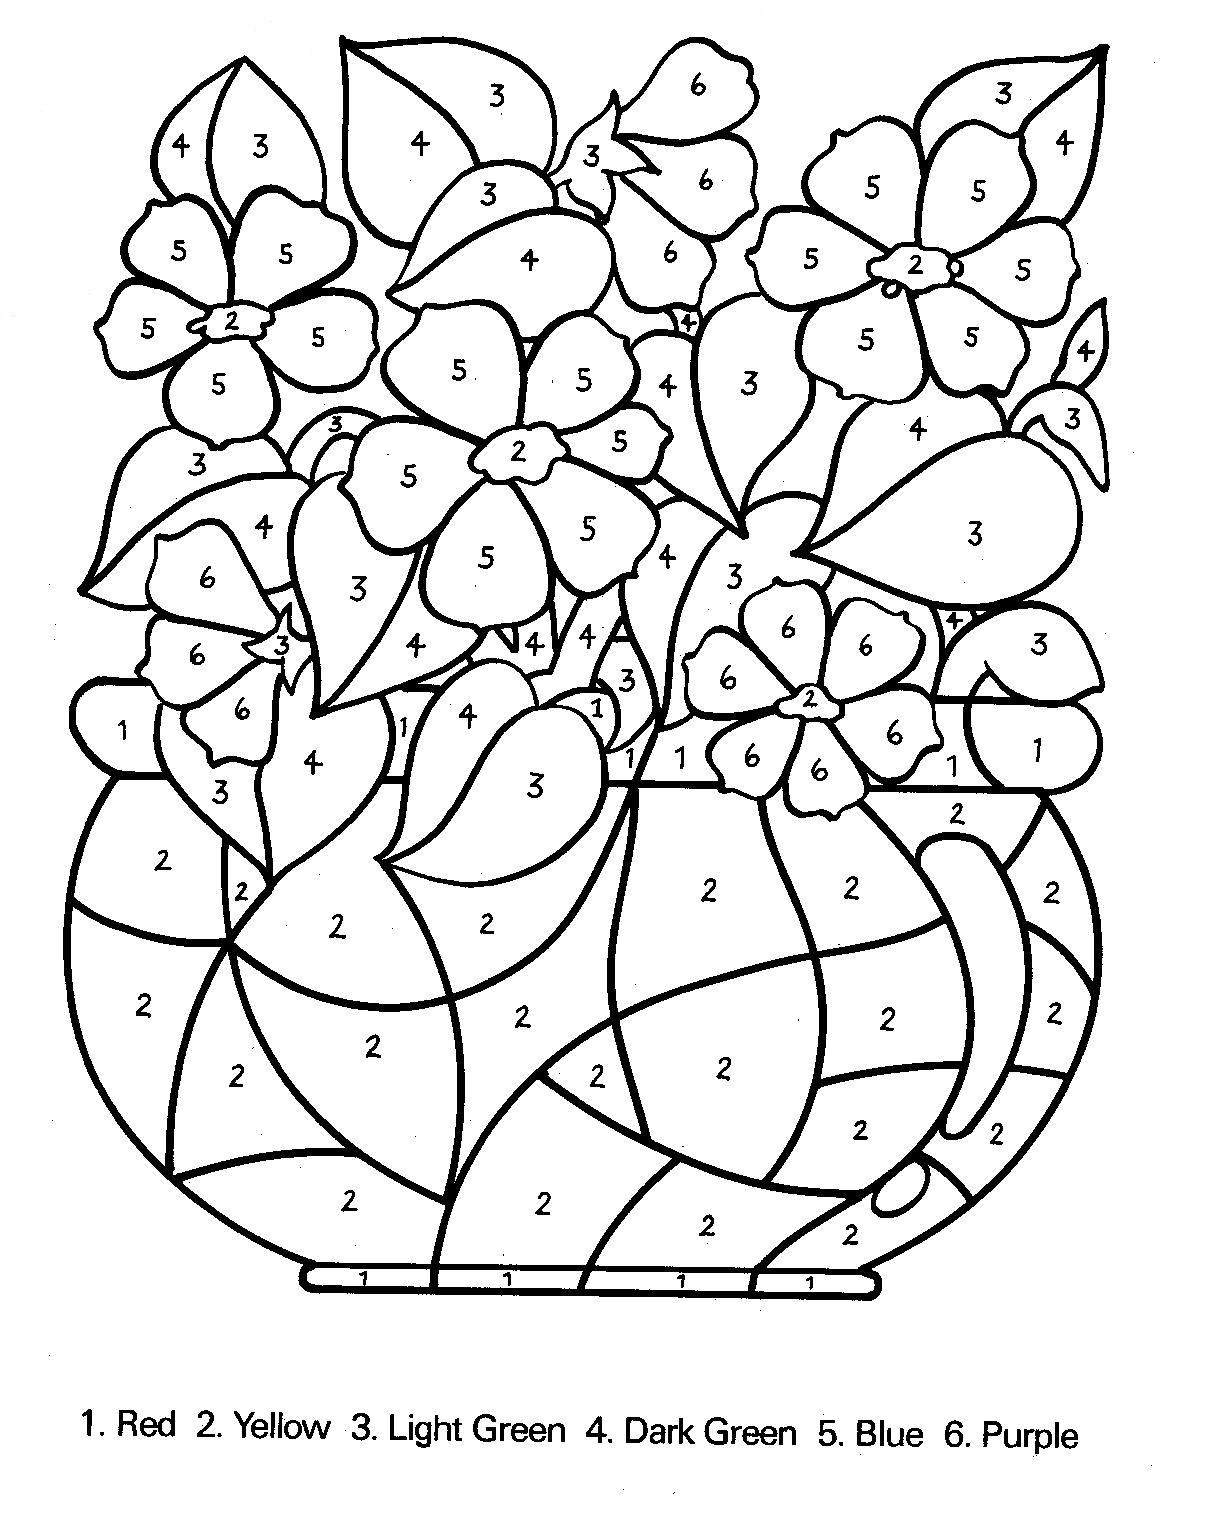 Number Coloring Pages (4) - Coloring Kids